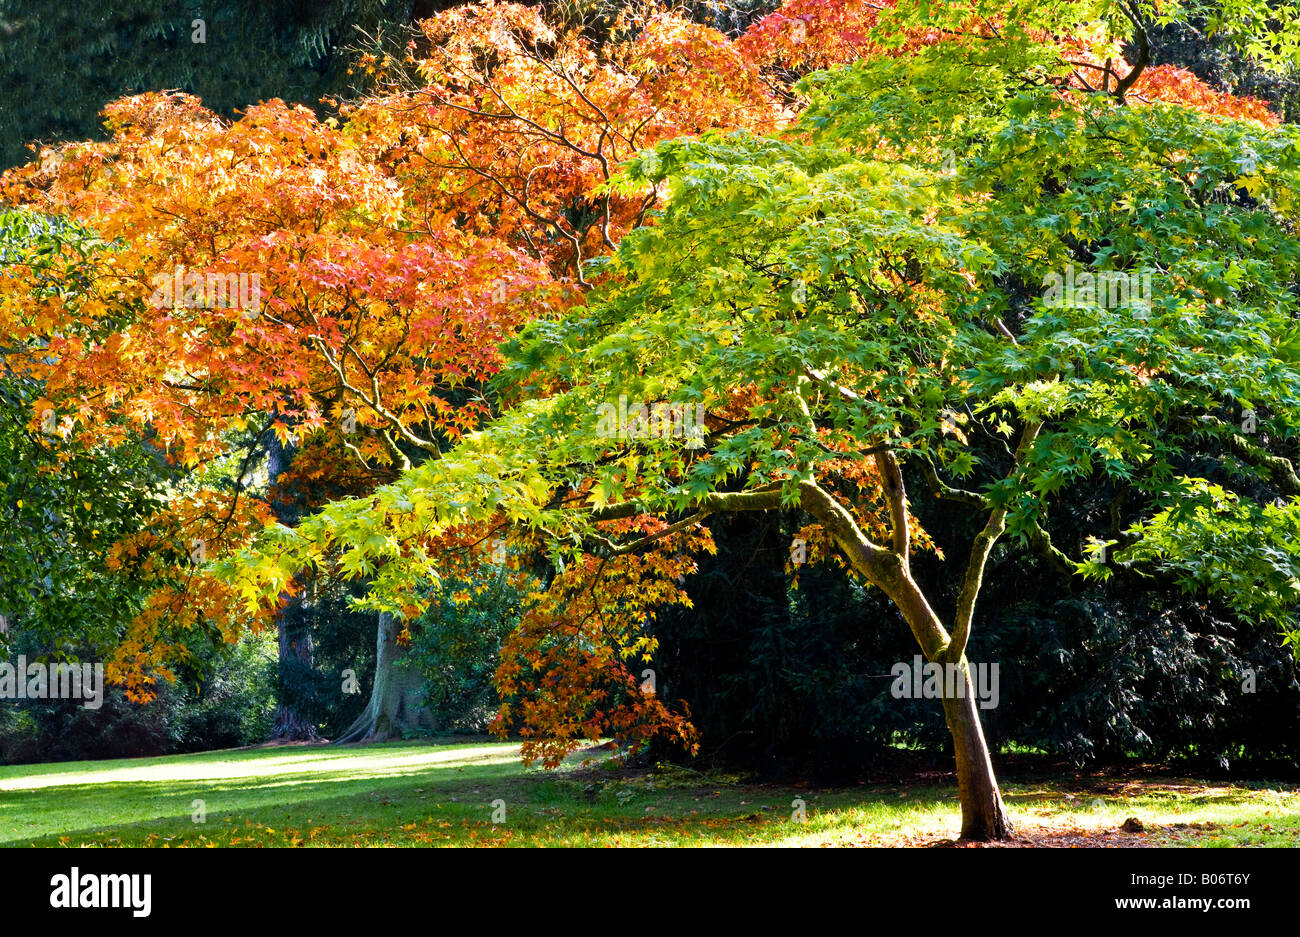 Green and golden Japanese maple trees showing autumn colour. Stock Photo